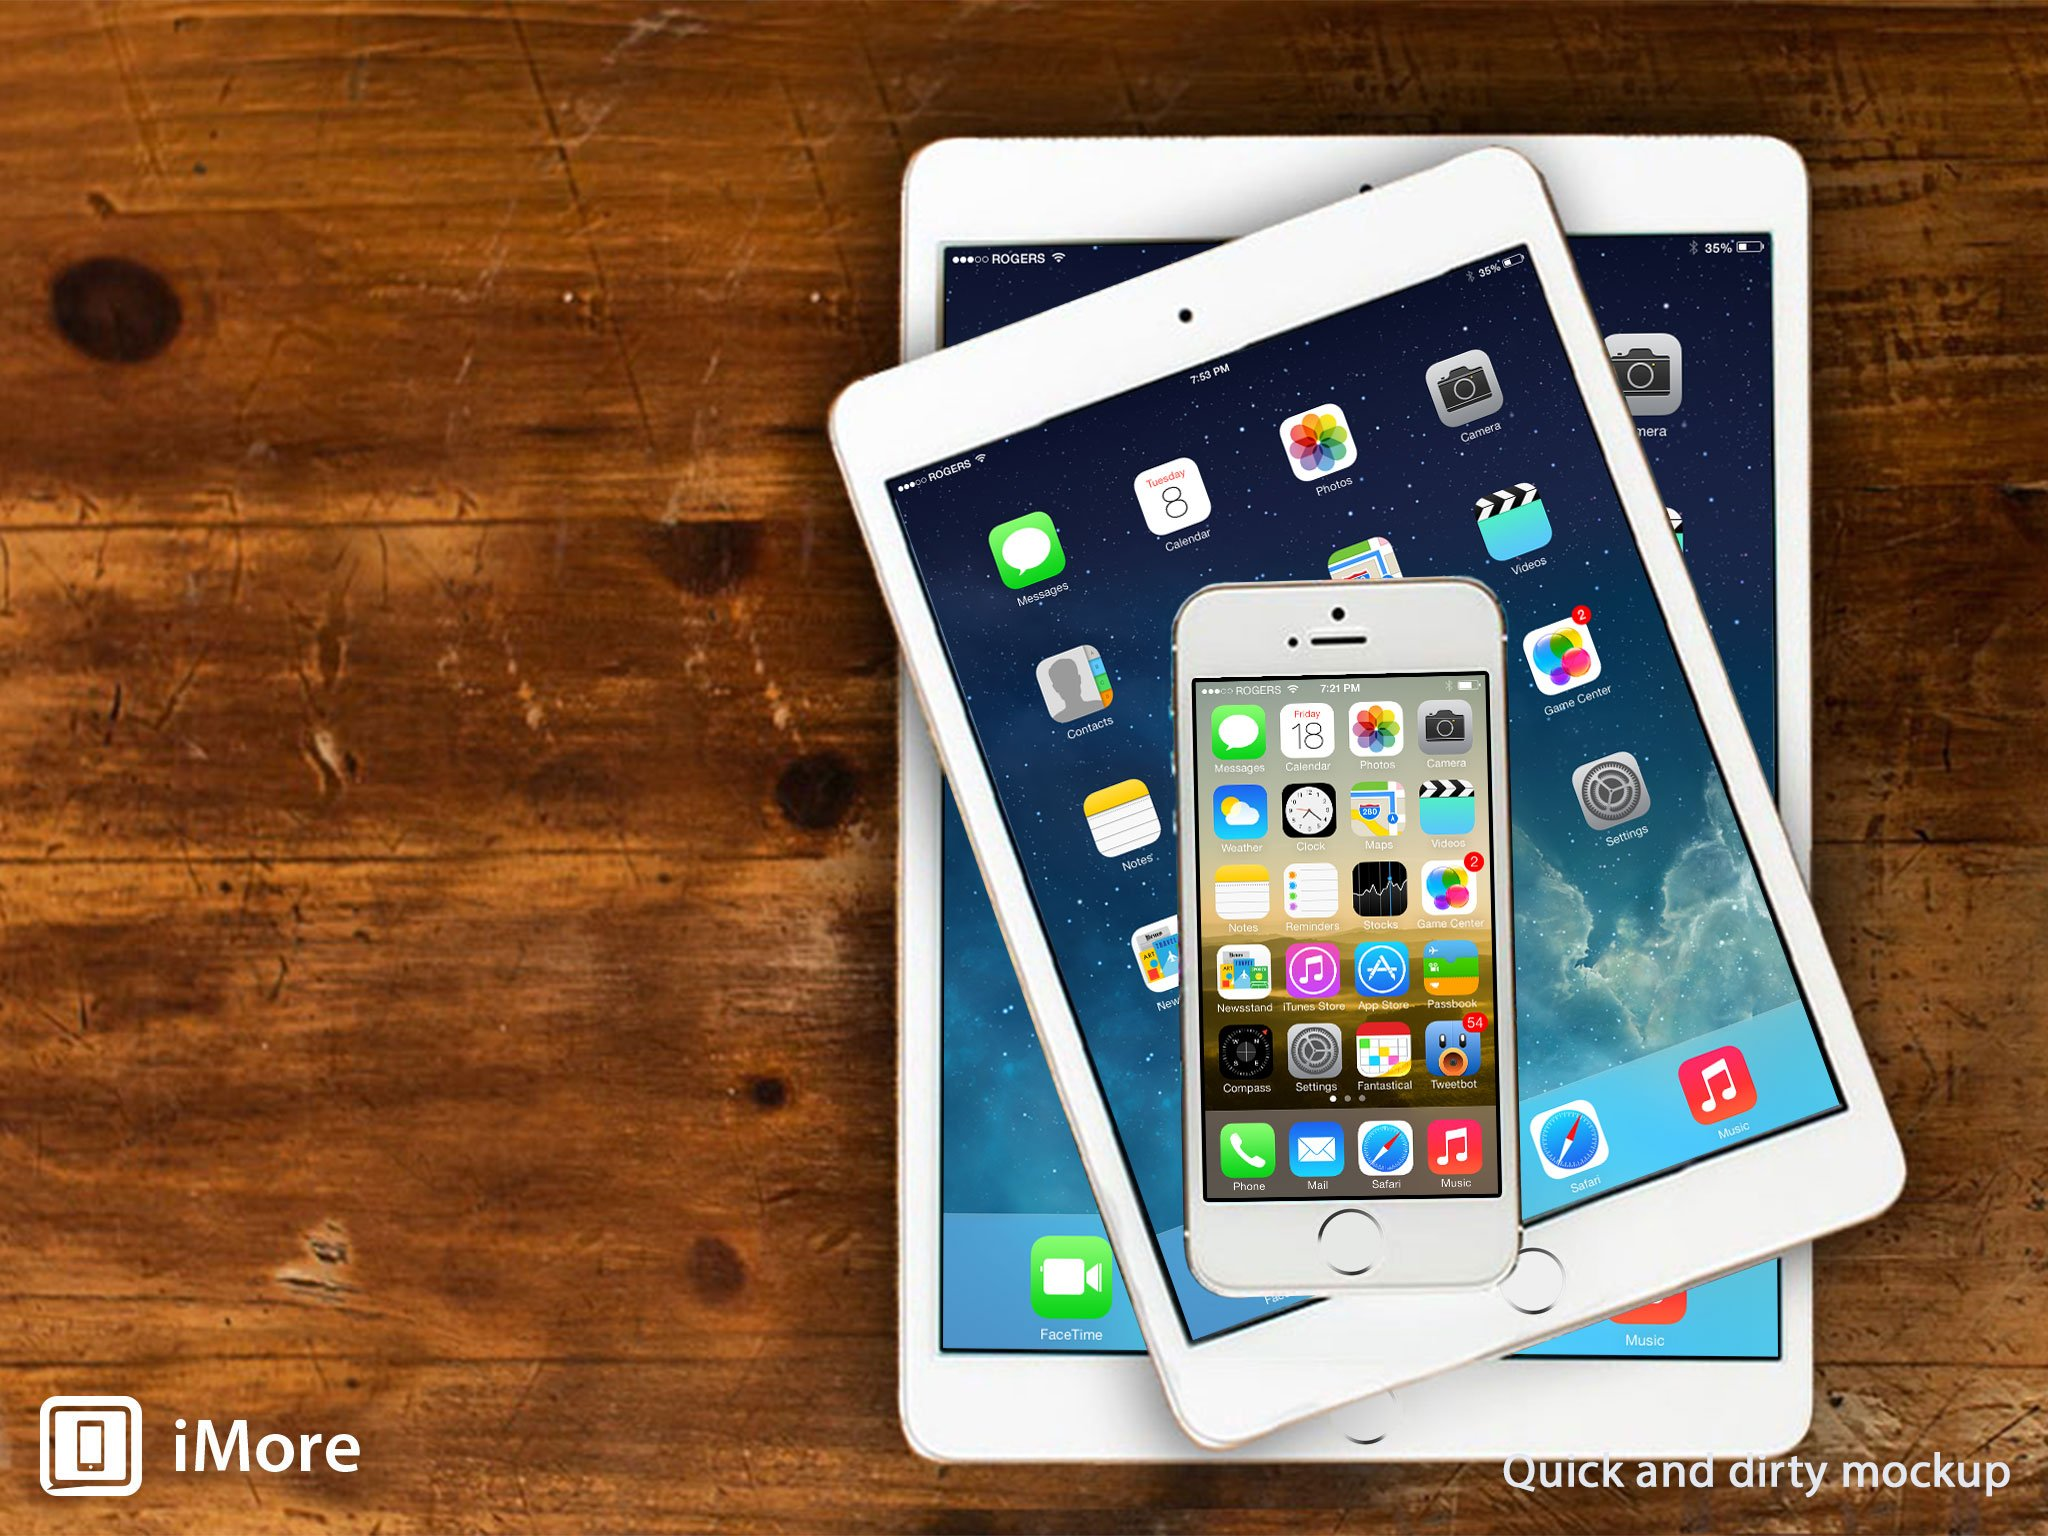 Imagining the iPad 5 and iPad mini 2